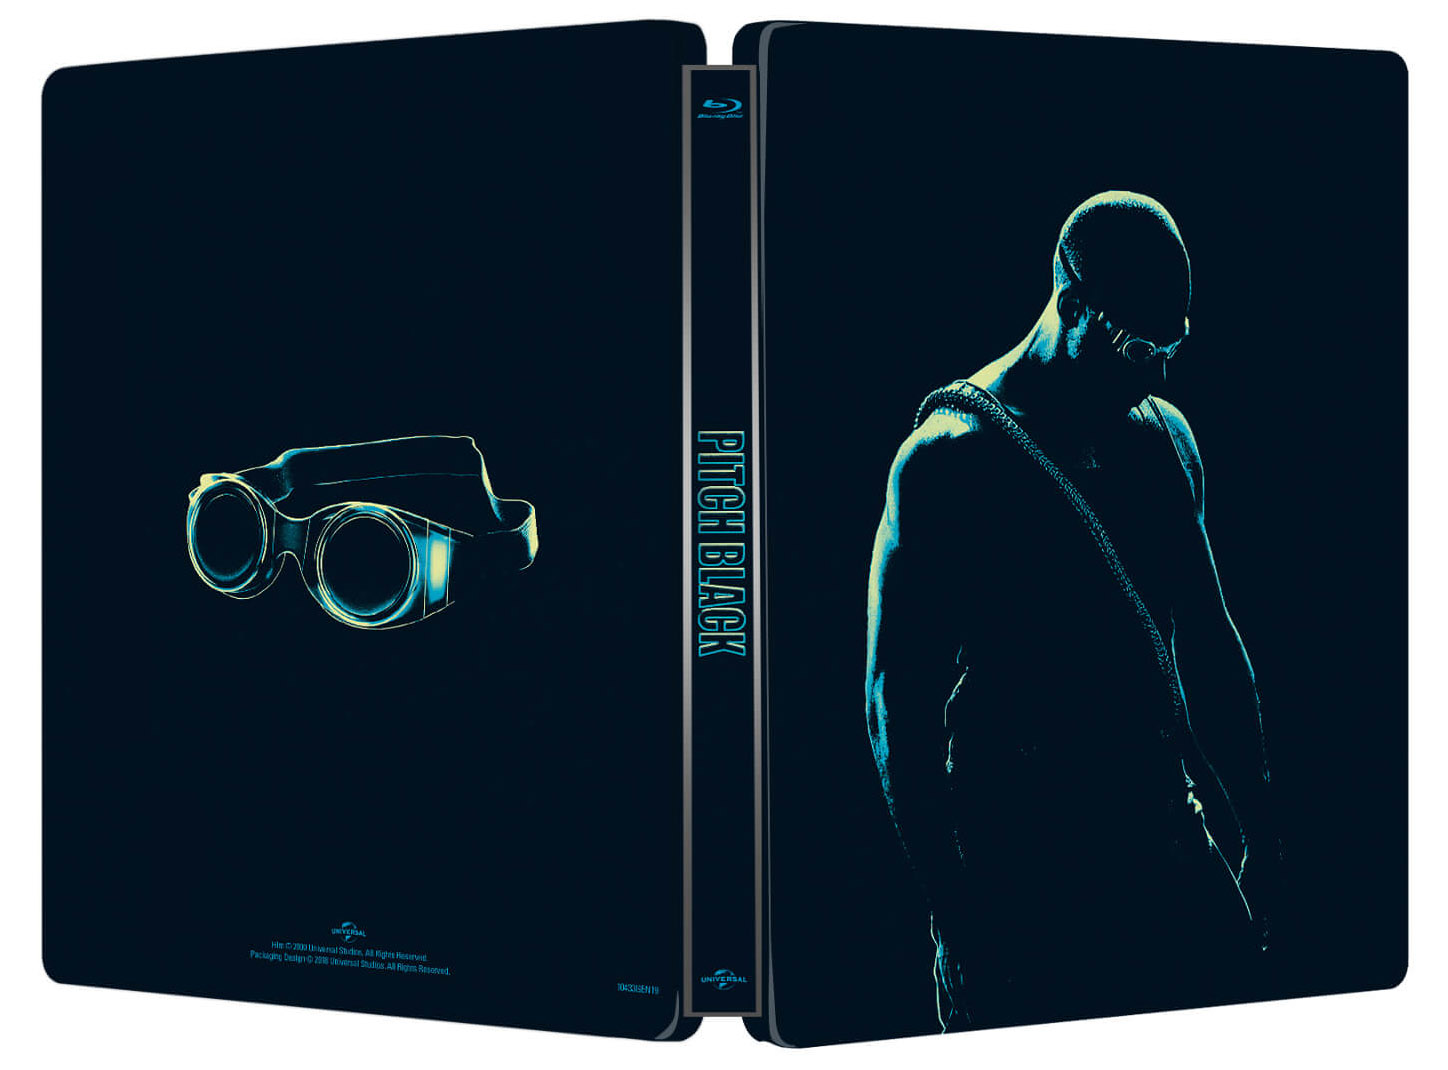 Pitch Black Blu-ray SteelBook outside